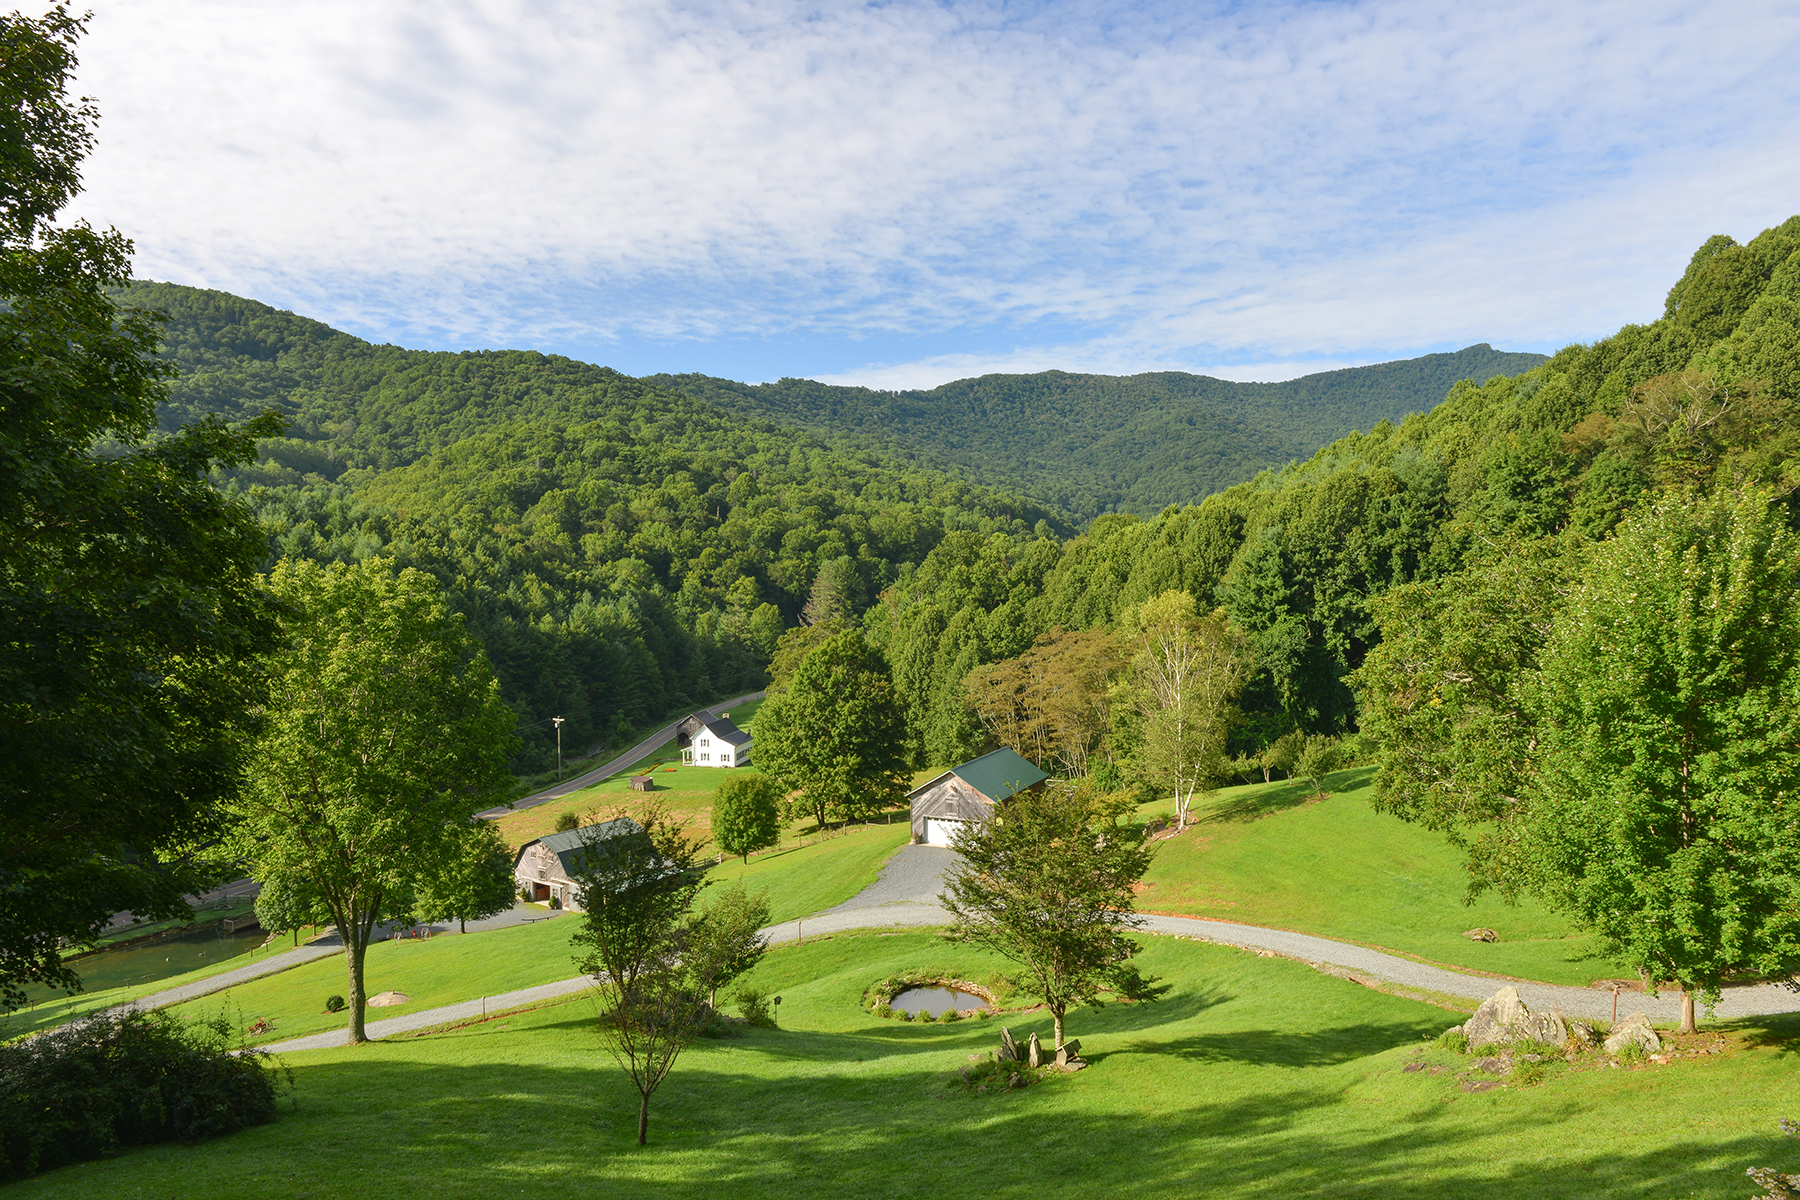 Single Family Home for Sale at Valle Crucis 1548 Dutch Creek Road Banner Elk, North Carolina, 28604 United States